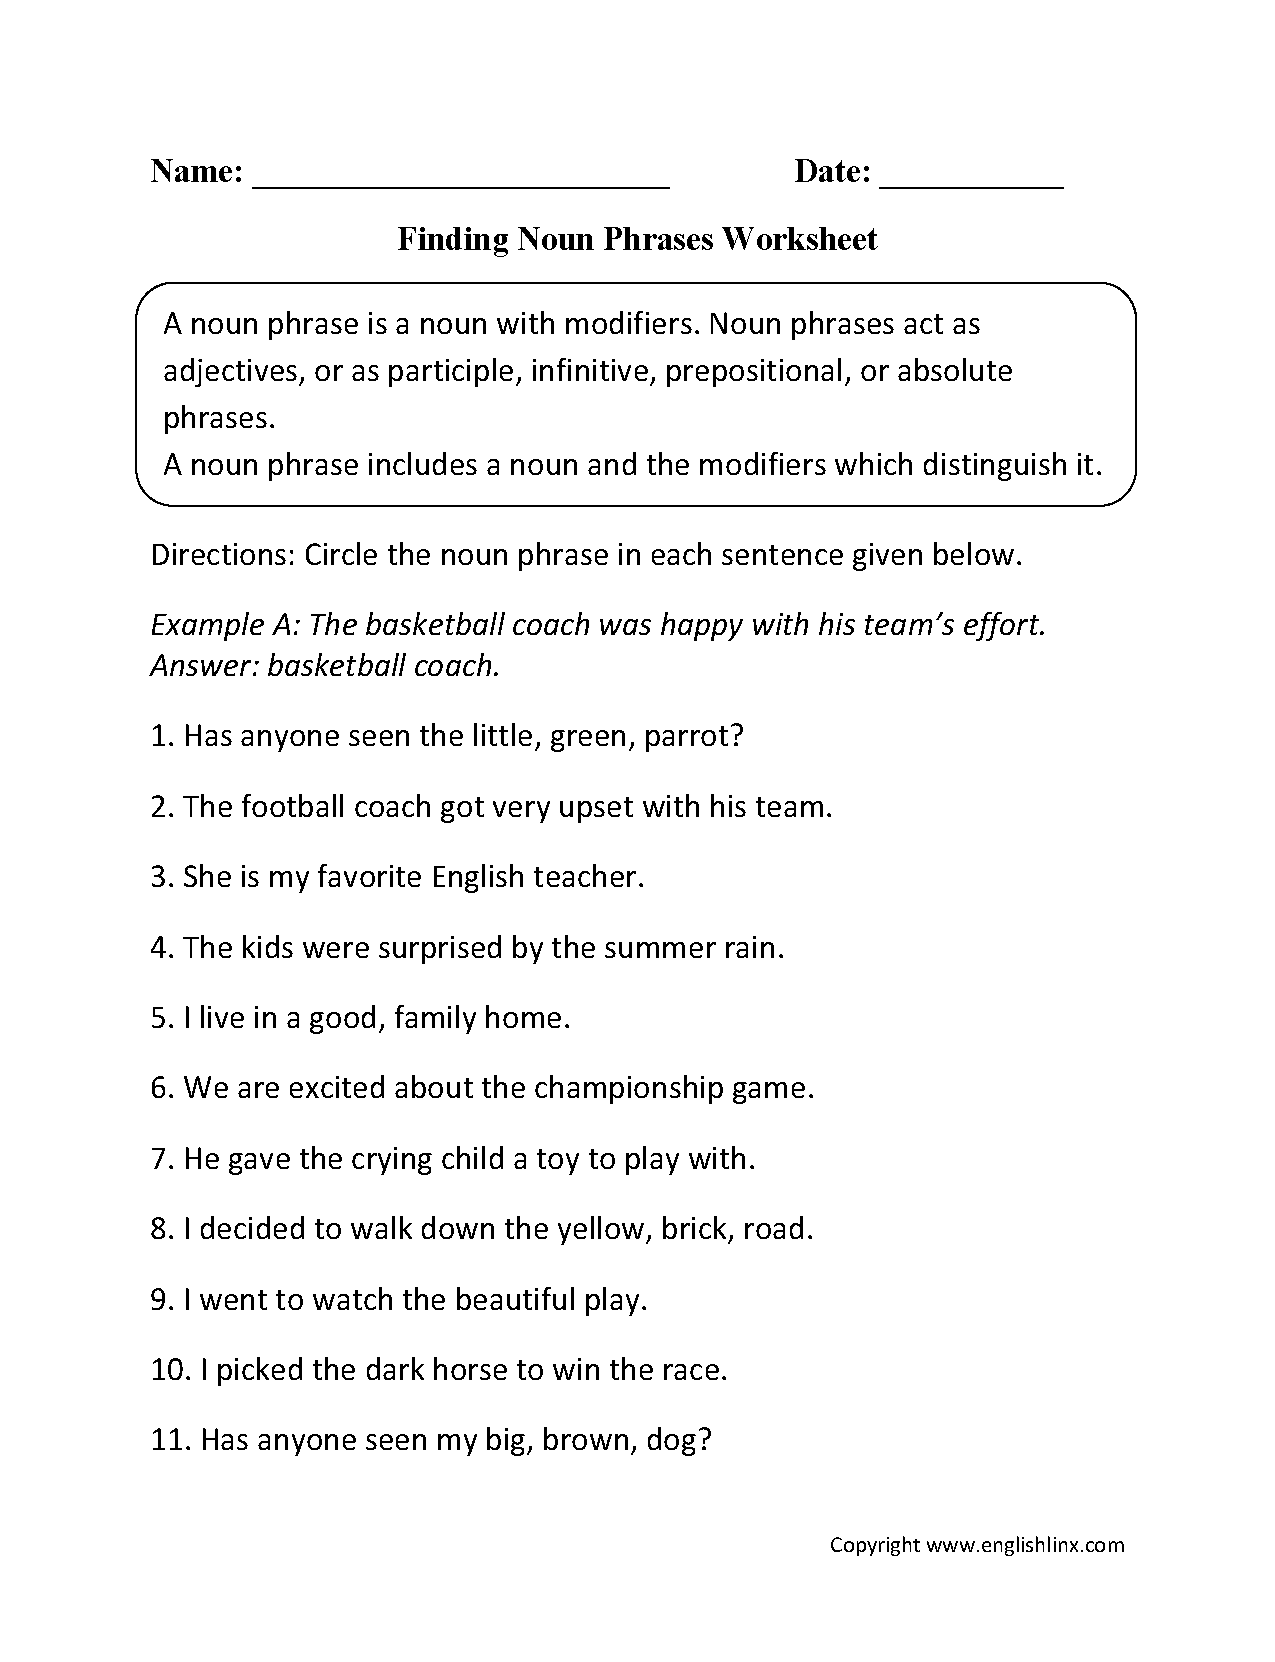 Uncategorized Collective Noun Worksheets finding noun phrases worksheets pinterest free nouns for use at school or home a is word that names person place thing idea